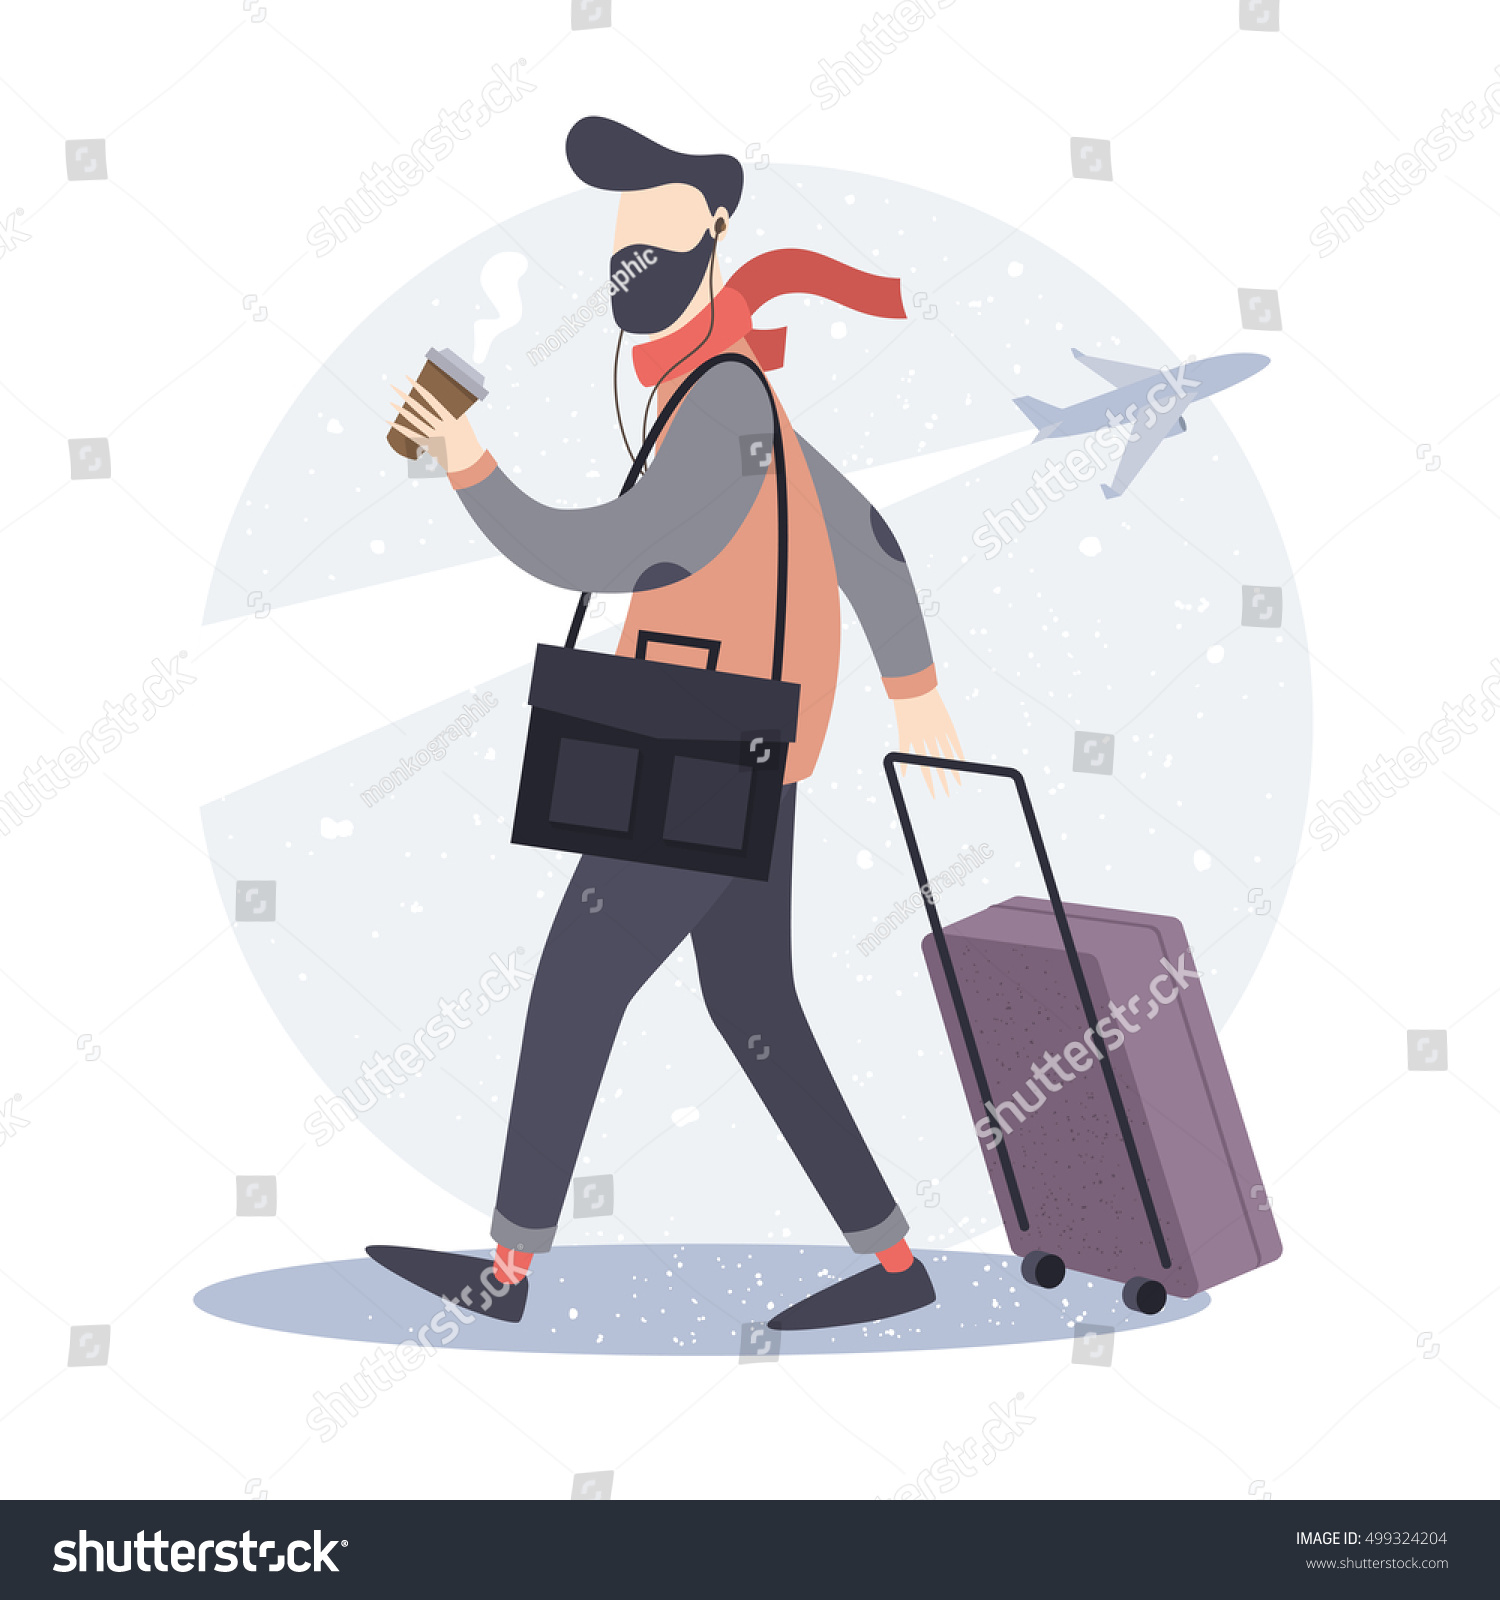 Tourist. Hipster man with a suitcase and a Cup of coffee goes to the airport. Vector illustration.